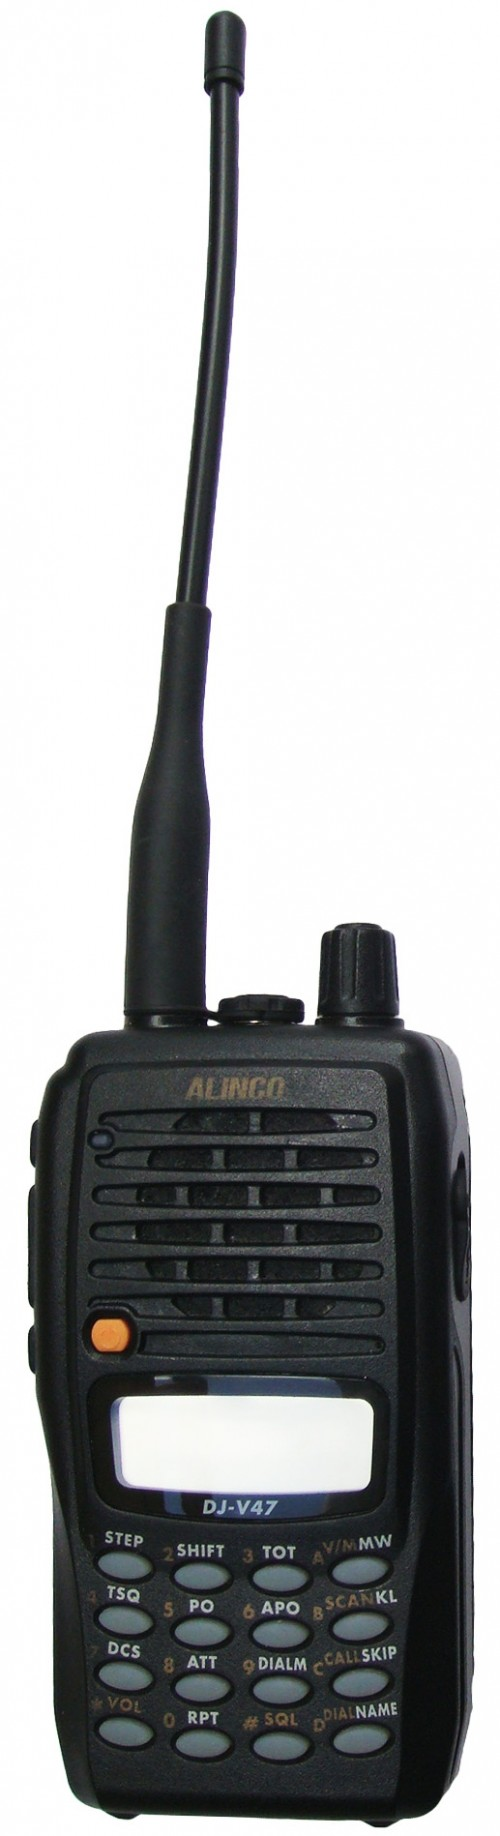 Alinco DJ-V47 (body) Профессиональная радиостанция Alinco DJ-V47 (body)